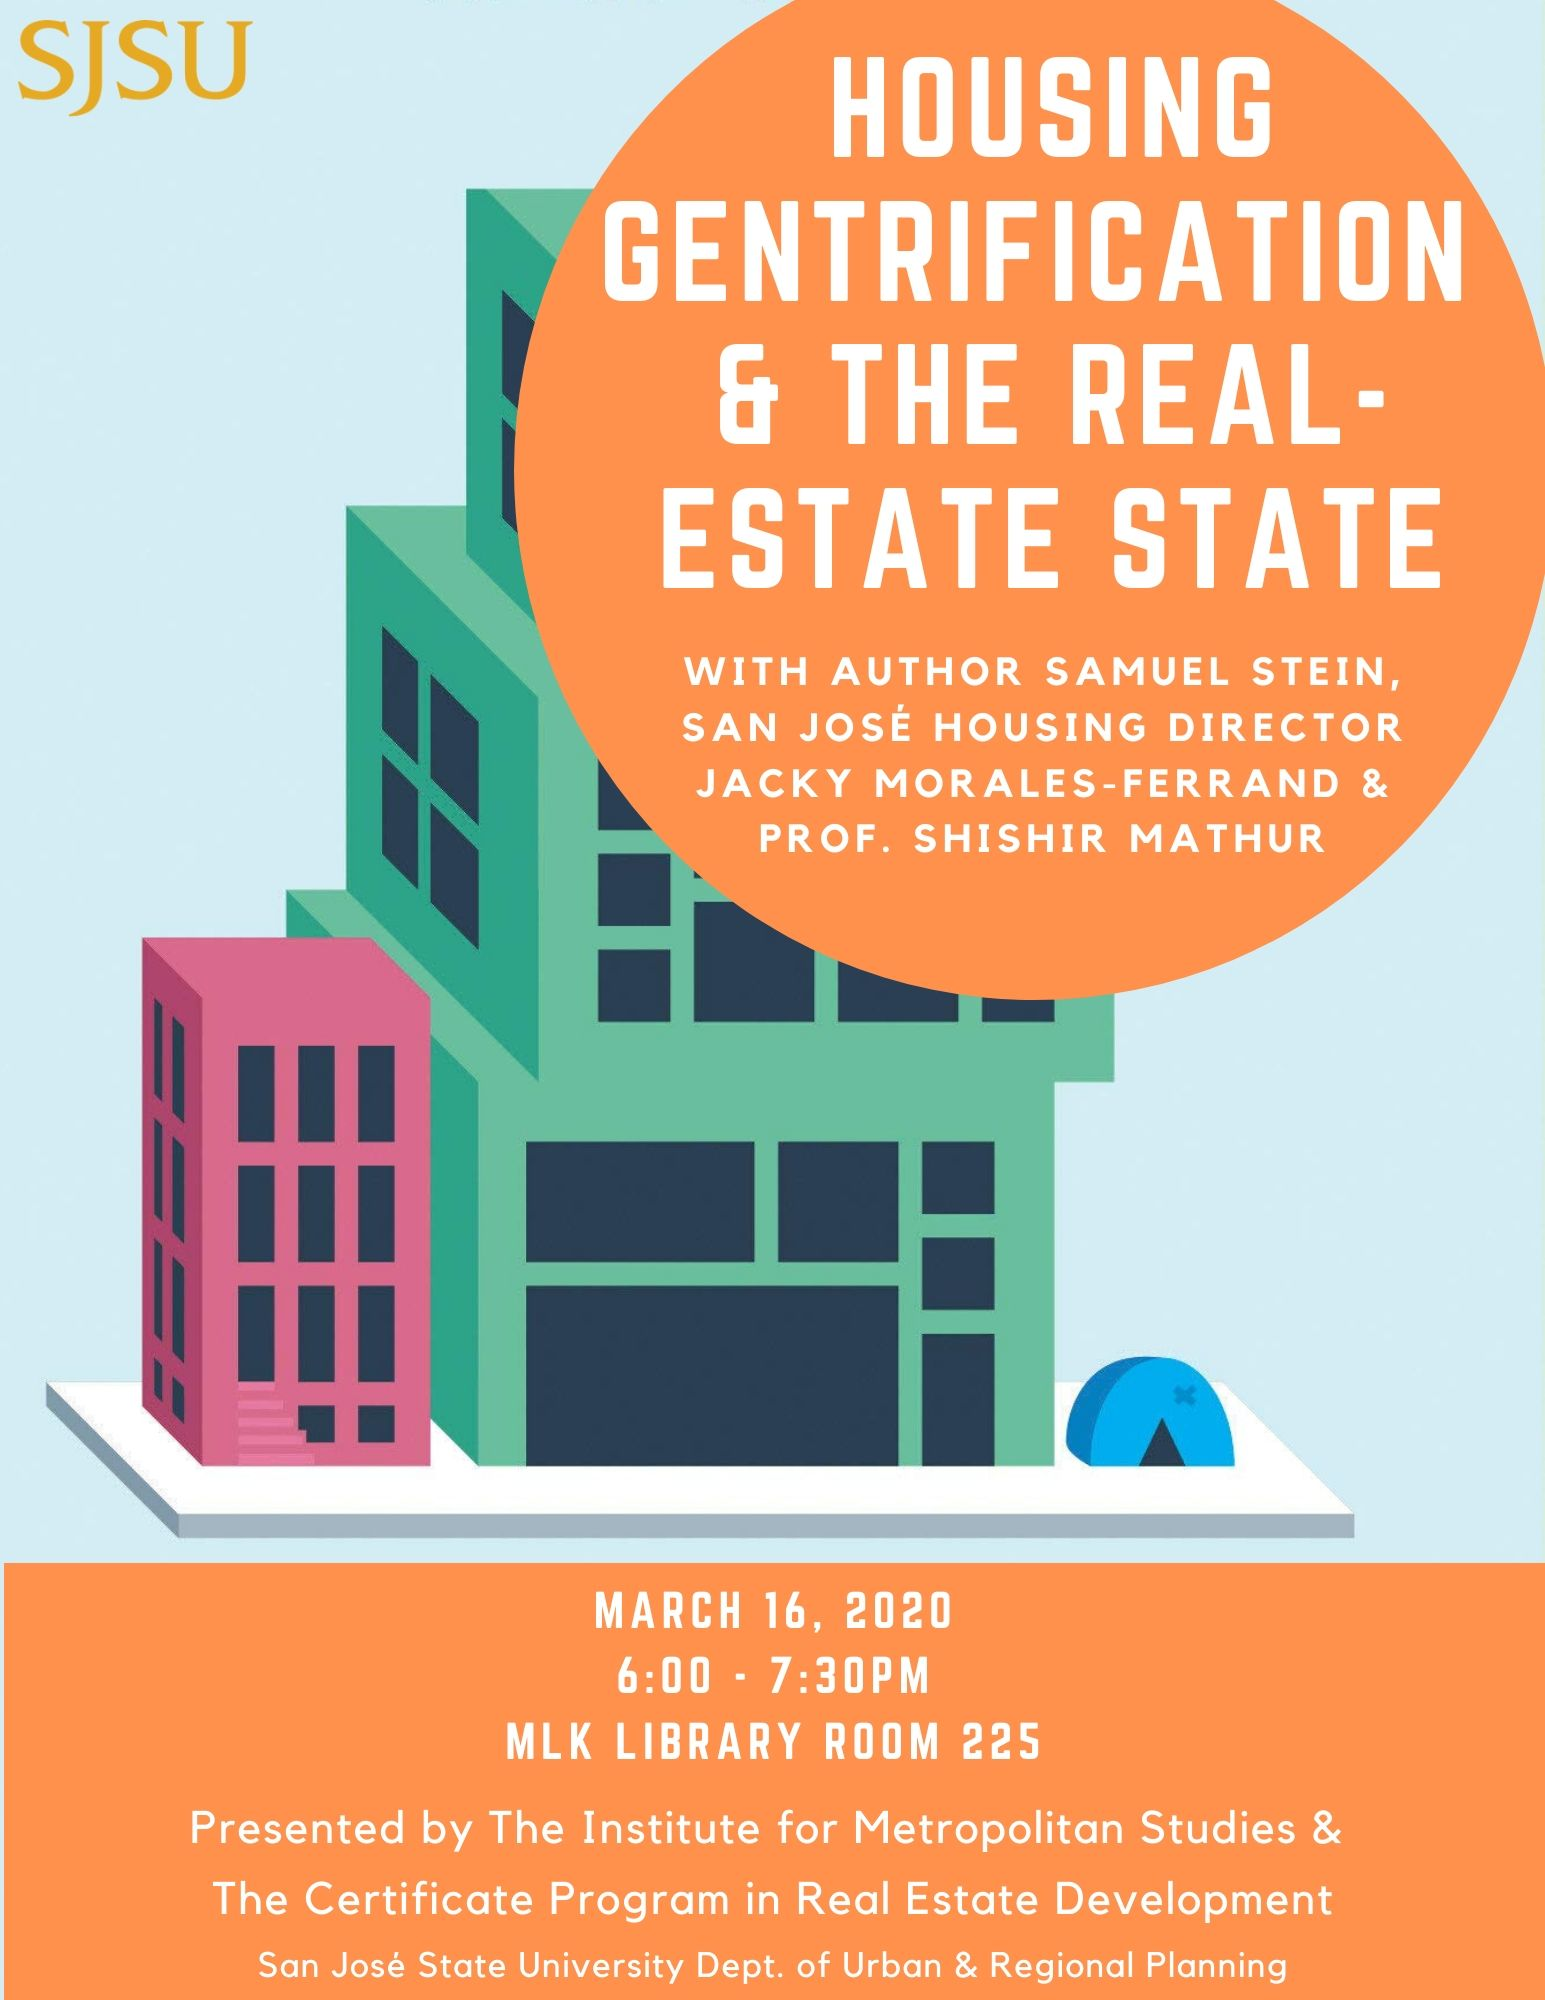 Real Estate State flier